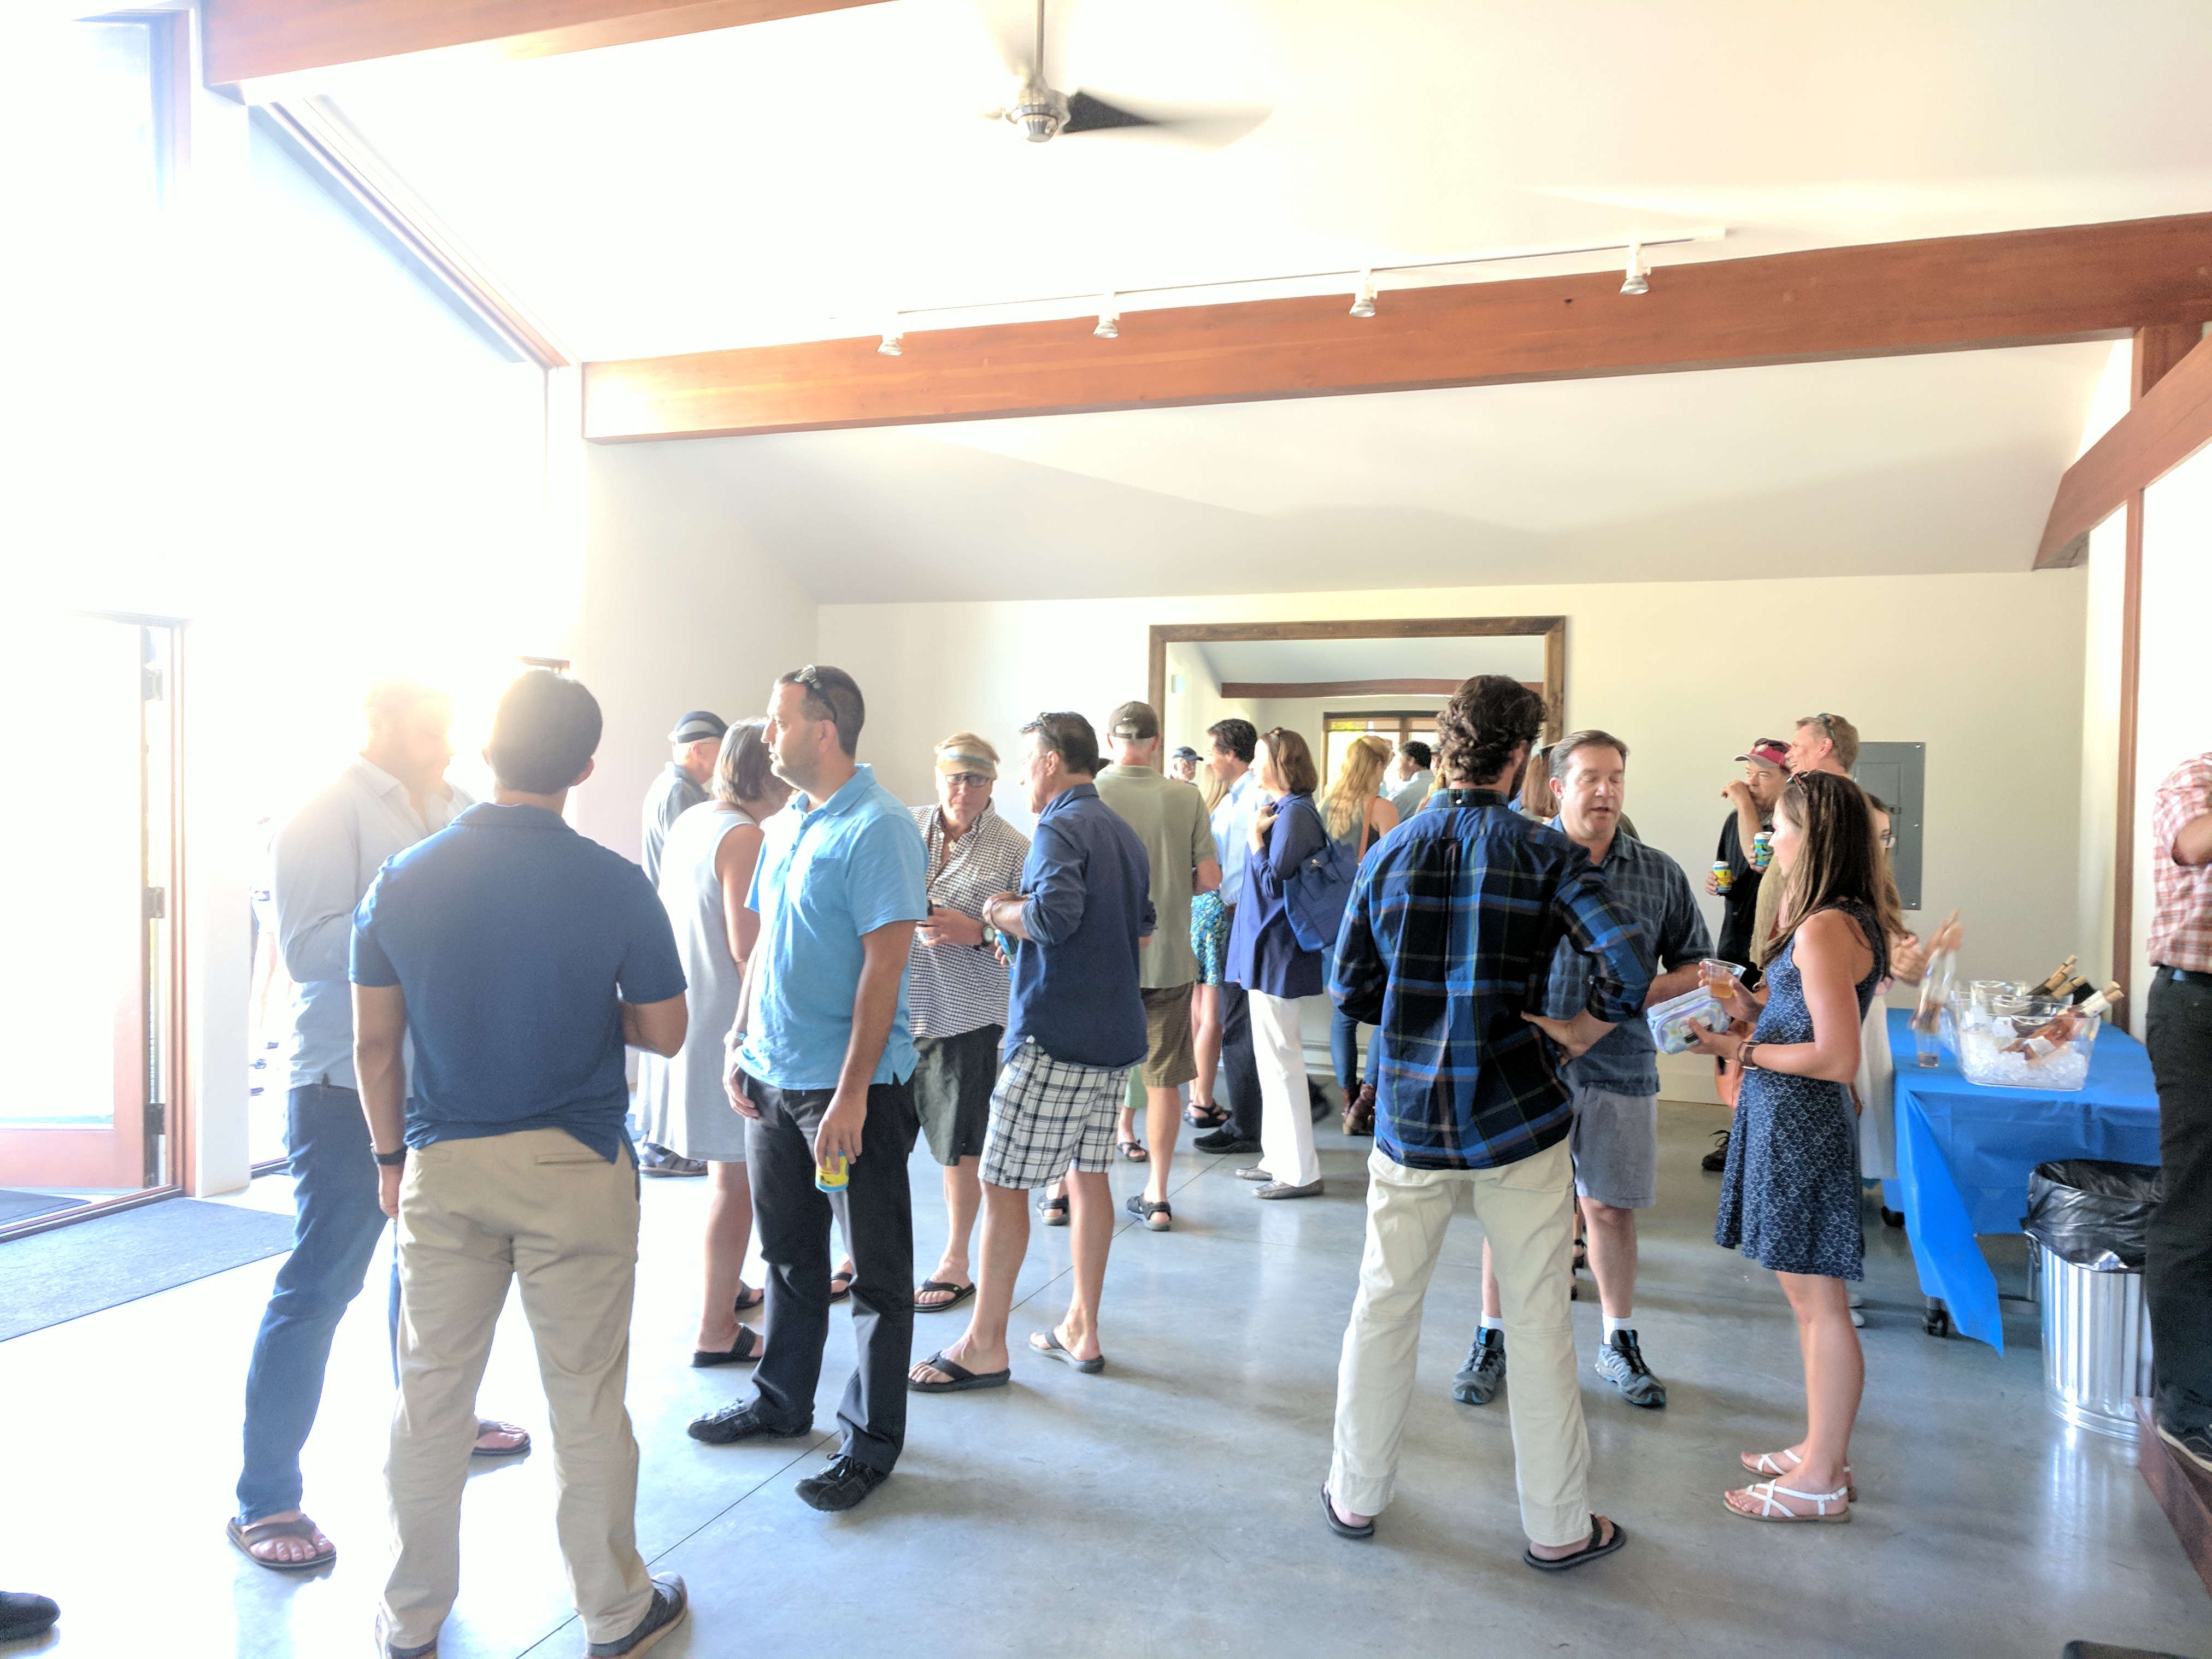 Networking event at Ketchum Innovation Center Coworking Space